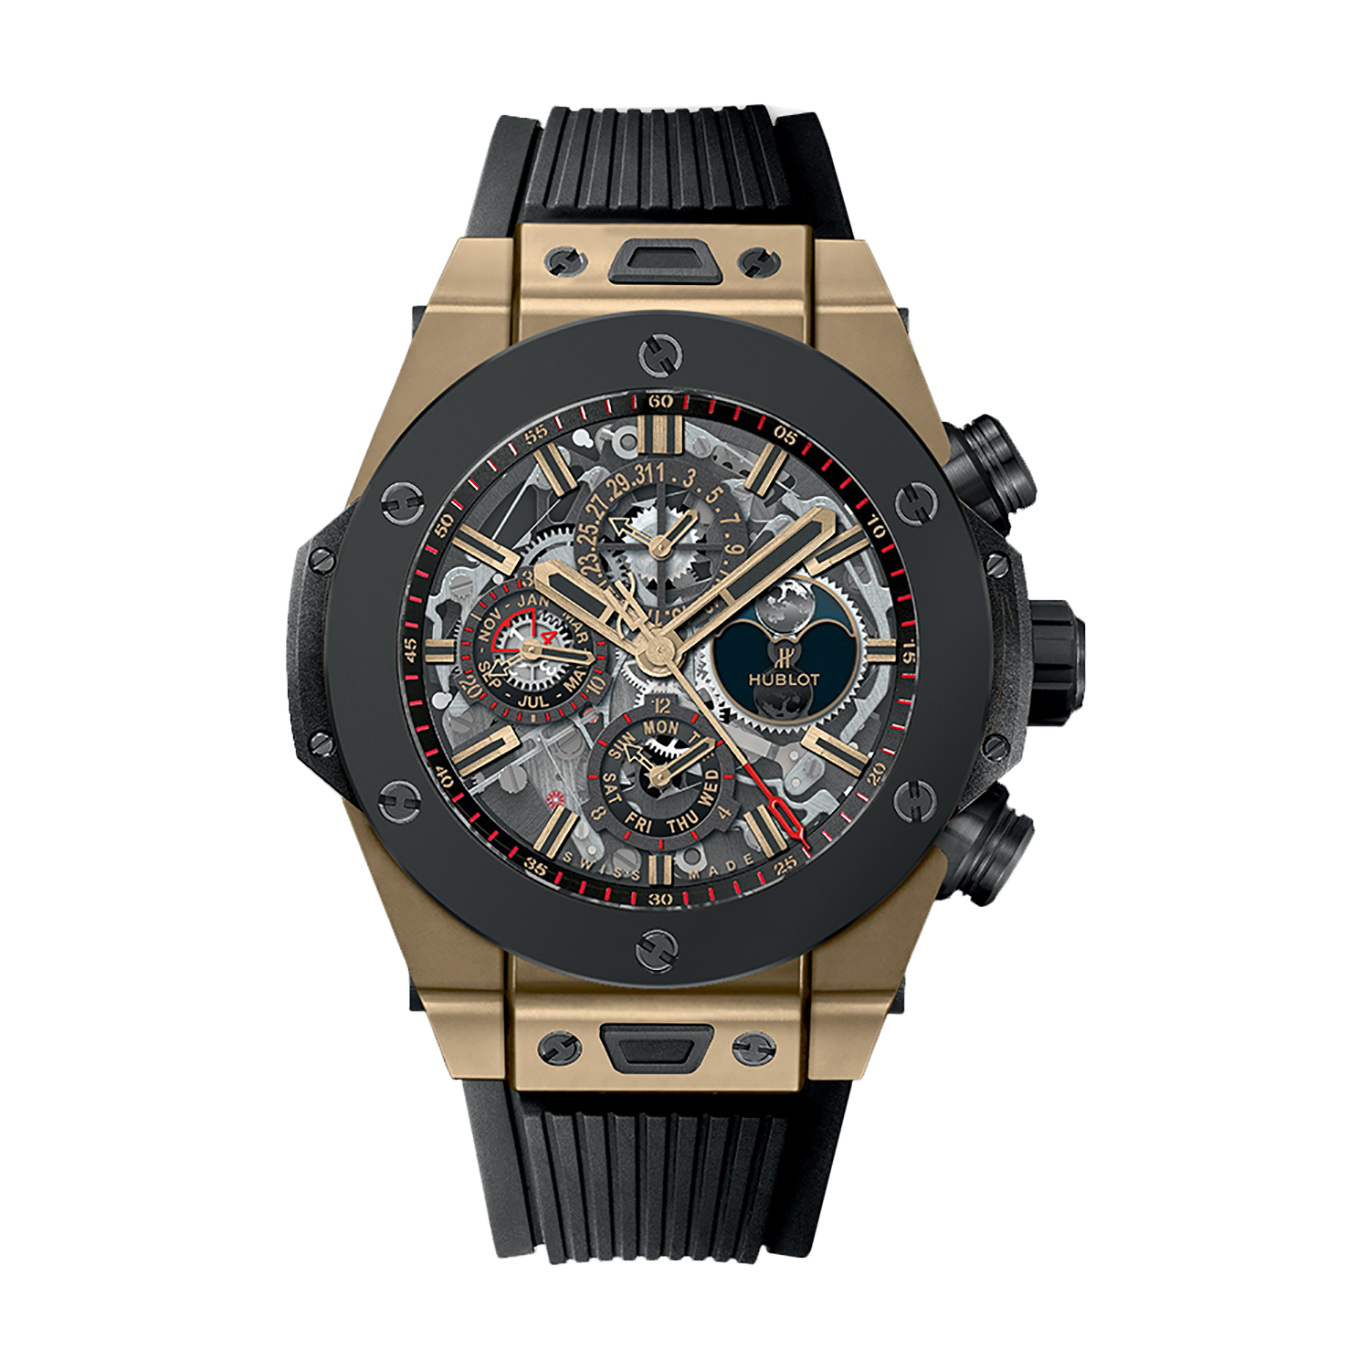 Big Bang Unico Perpetual Calendar Magic Gold Ceramic 406.MC.0138.RX